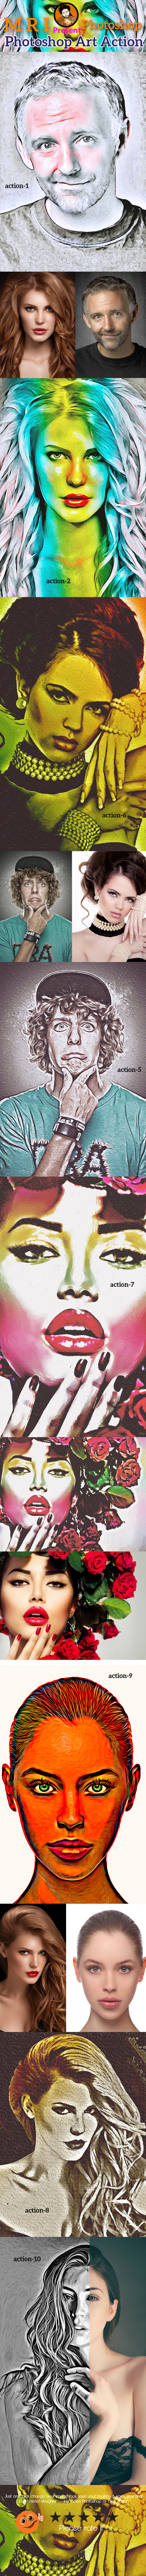 Photoshop Art Action - Actions Photoshop